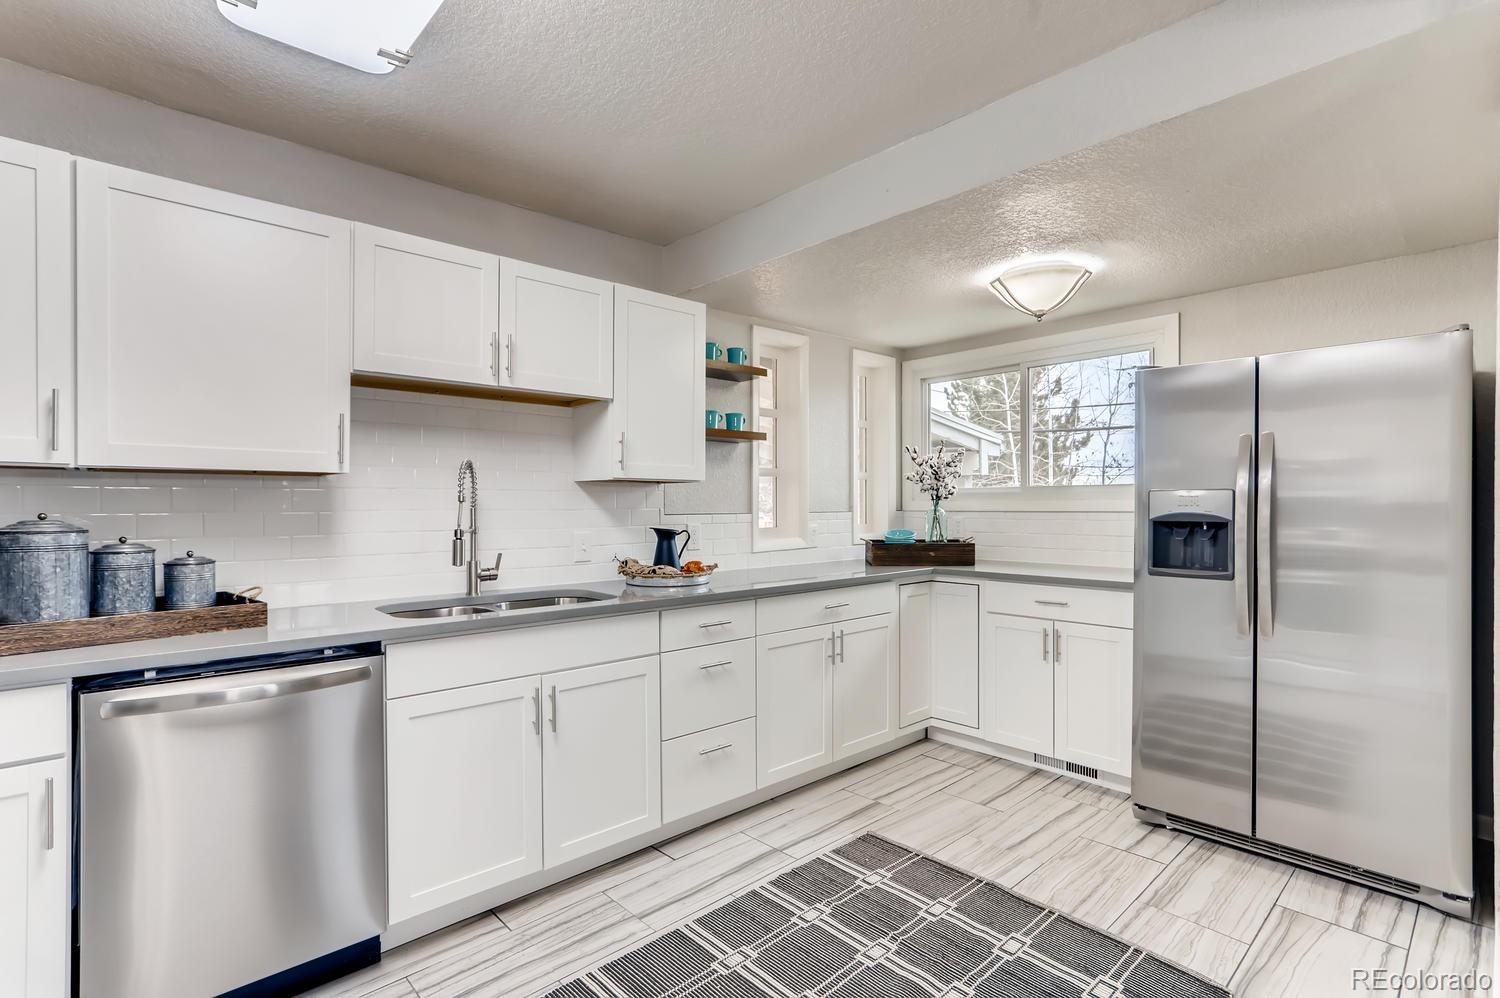 MLS# 2830054 - 10 - 8408 W 62nd Place, Arvada, CO 80004